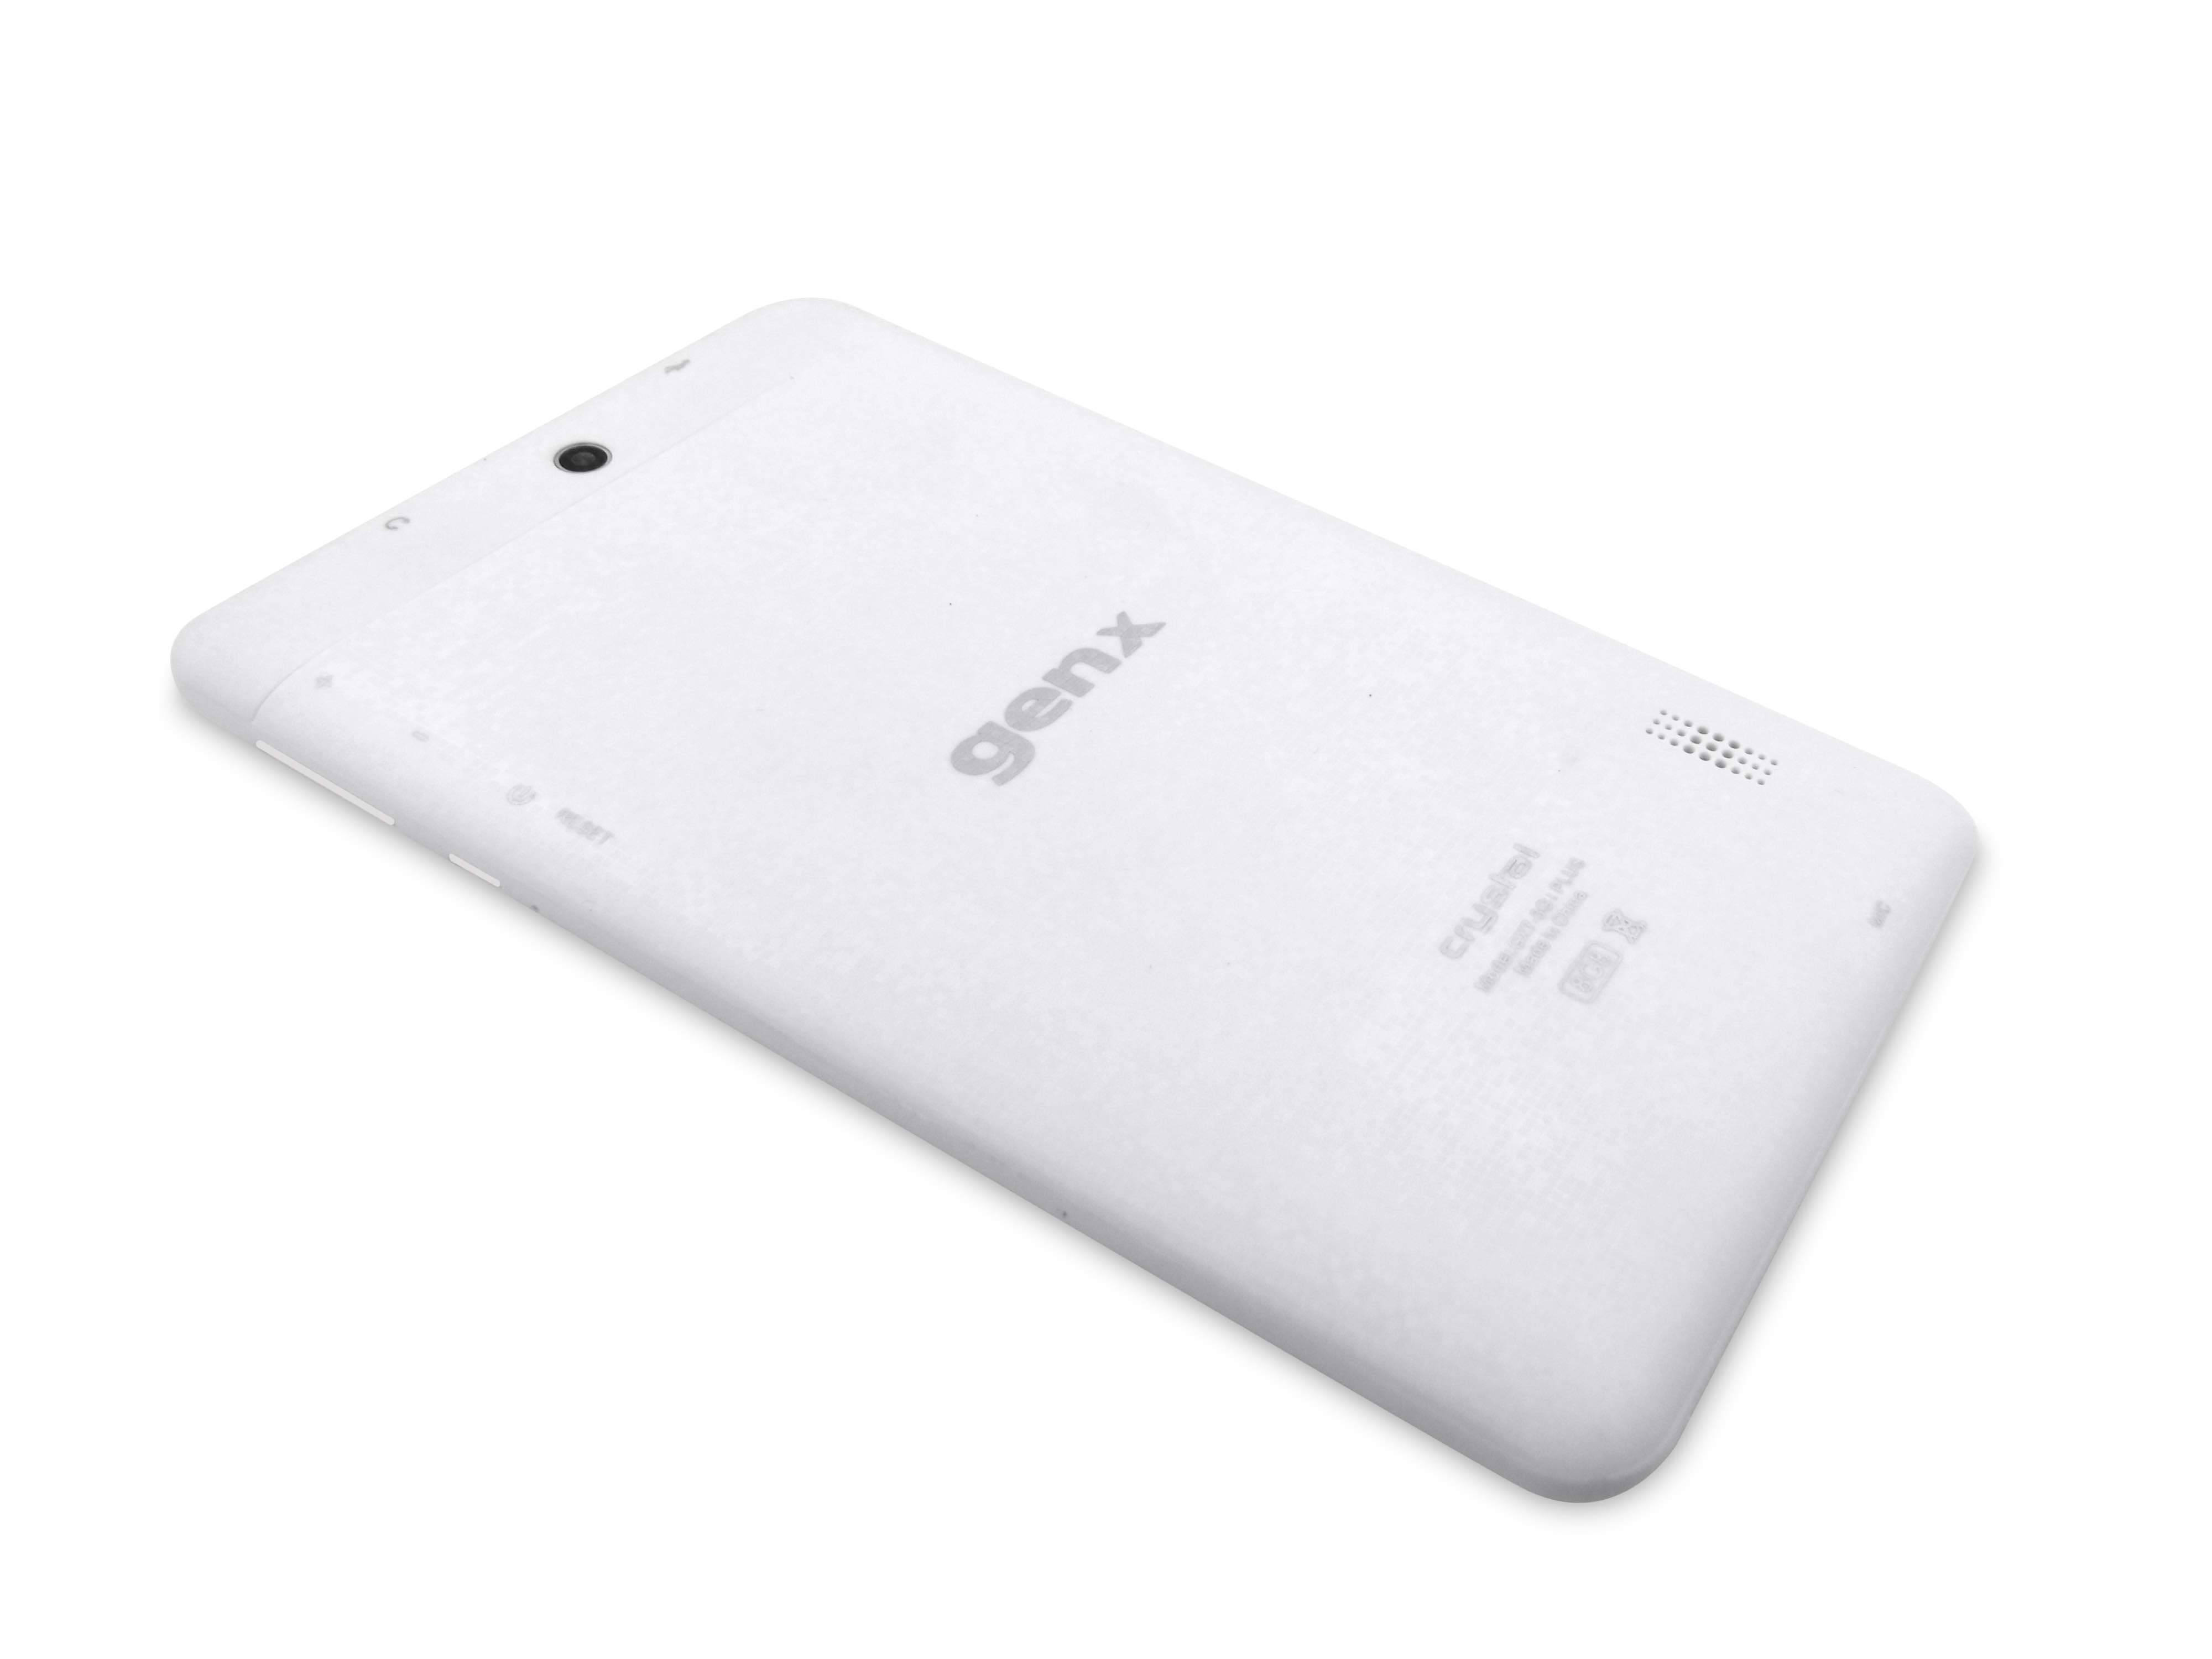 7inch 3G Tablet PC with Pouch